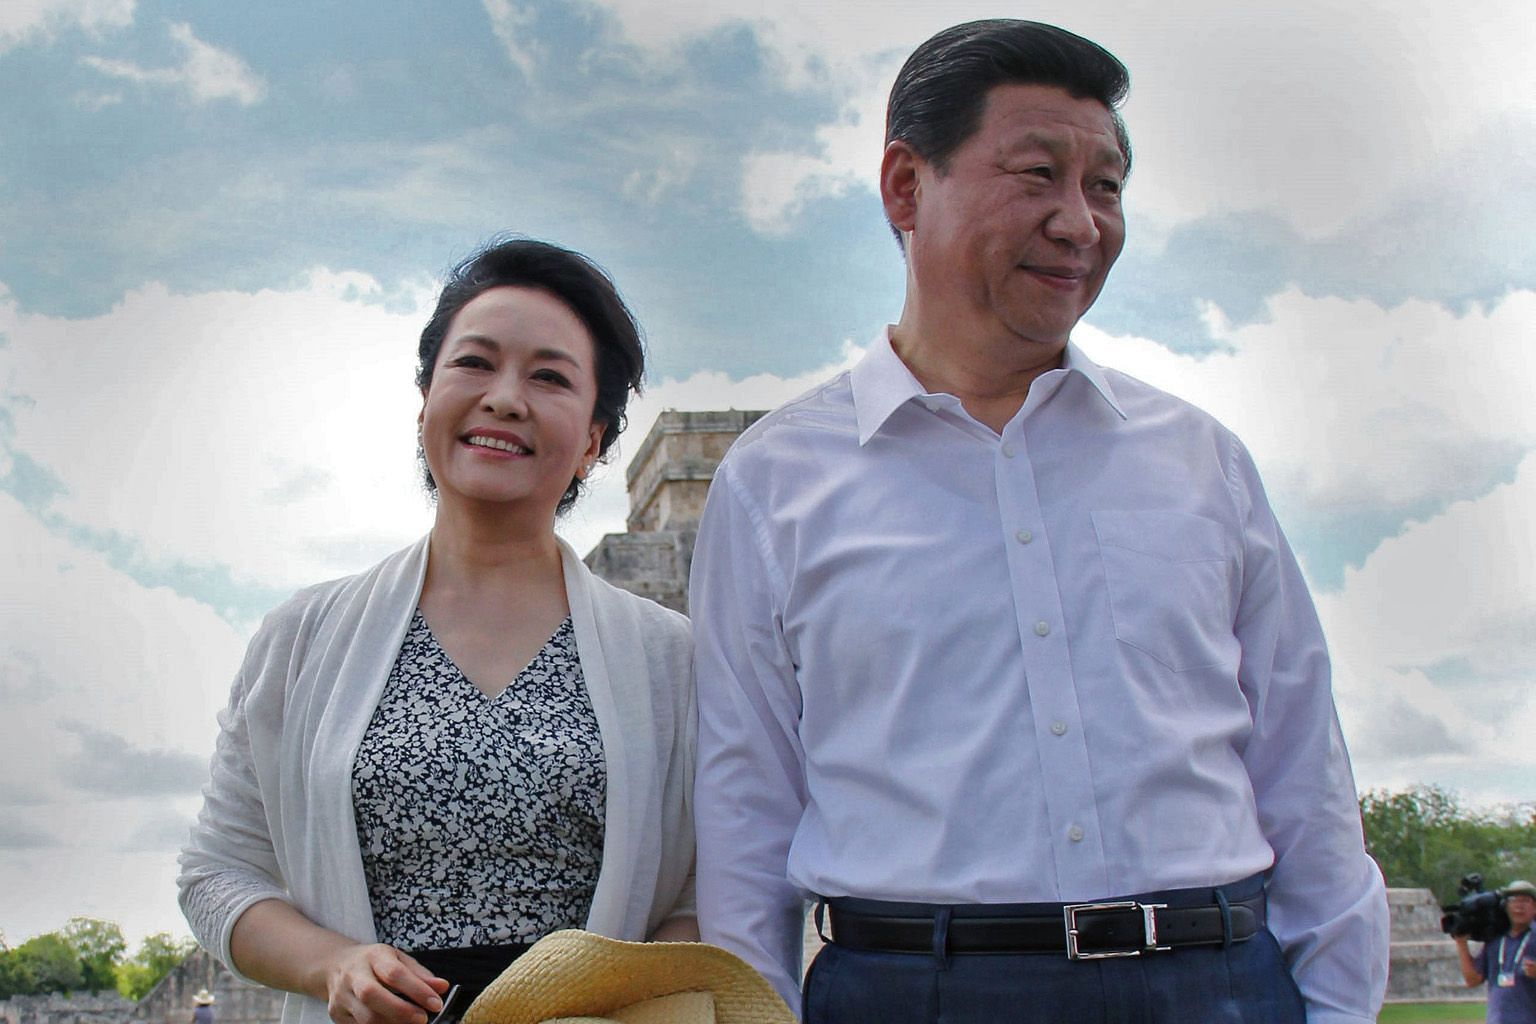 Chinese President Xi Jinping and his wife Peng Liyuan at the Chichen Itza archaeological site in Mexico's Yucatan state in 2013. Details about Mr Xi's marriage were revealed in two articles in Chinese state media.